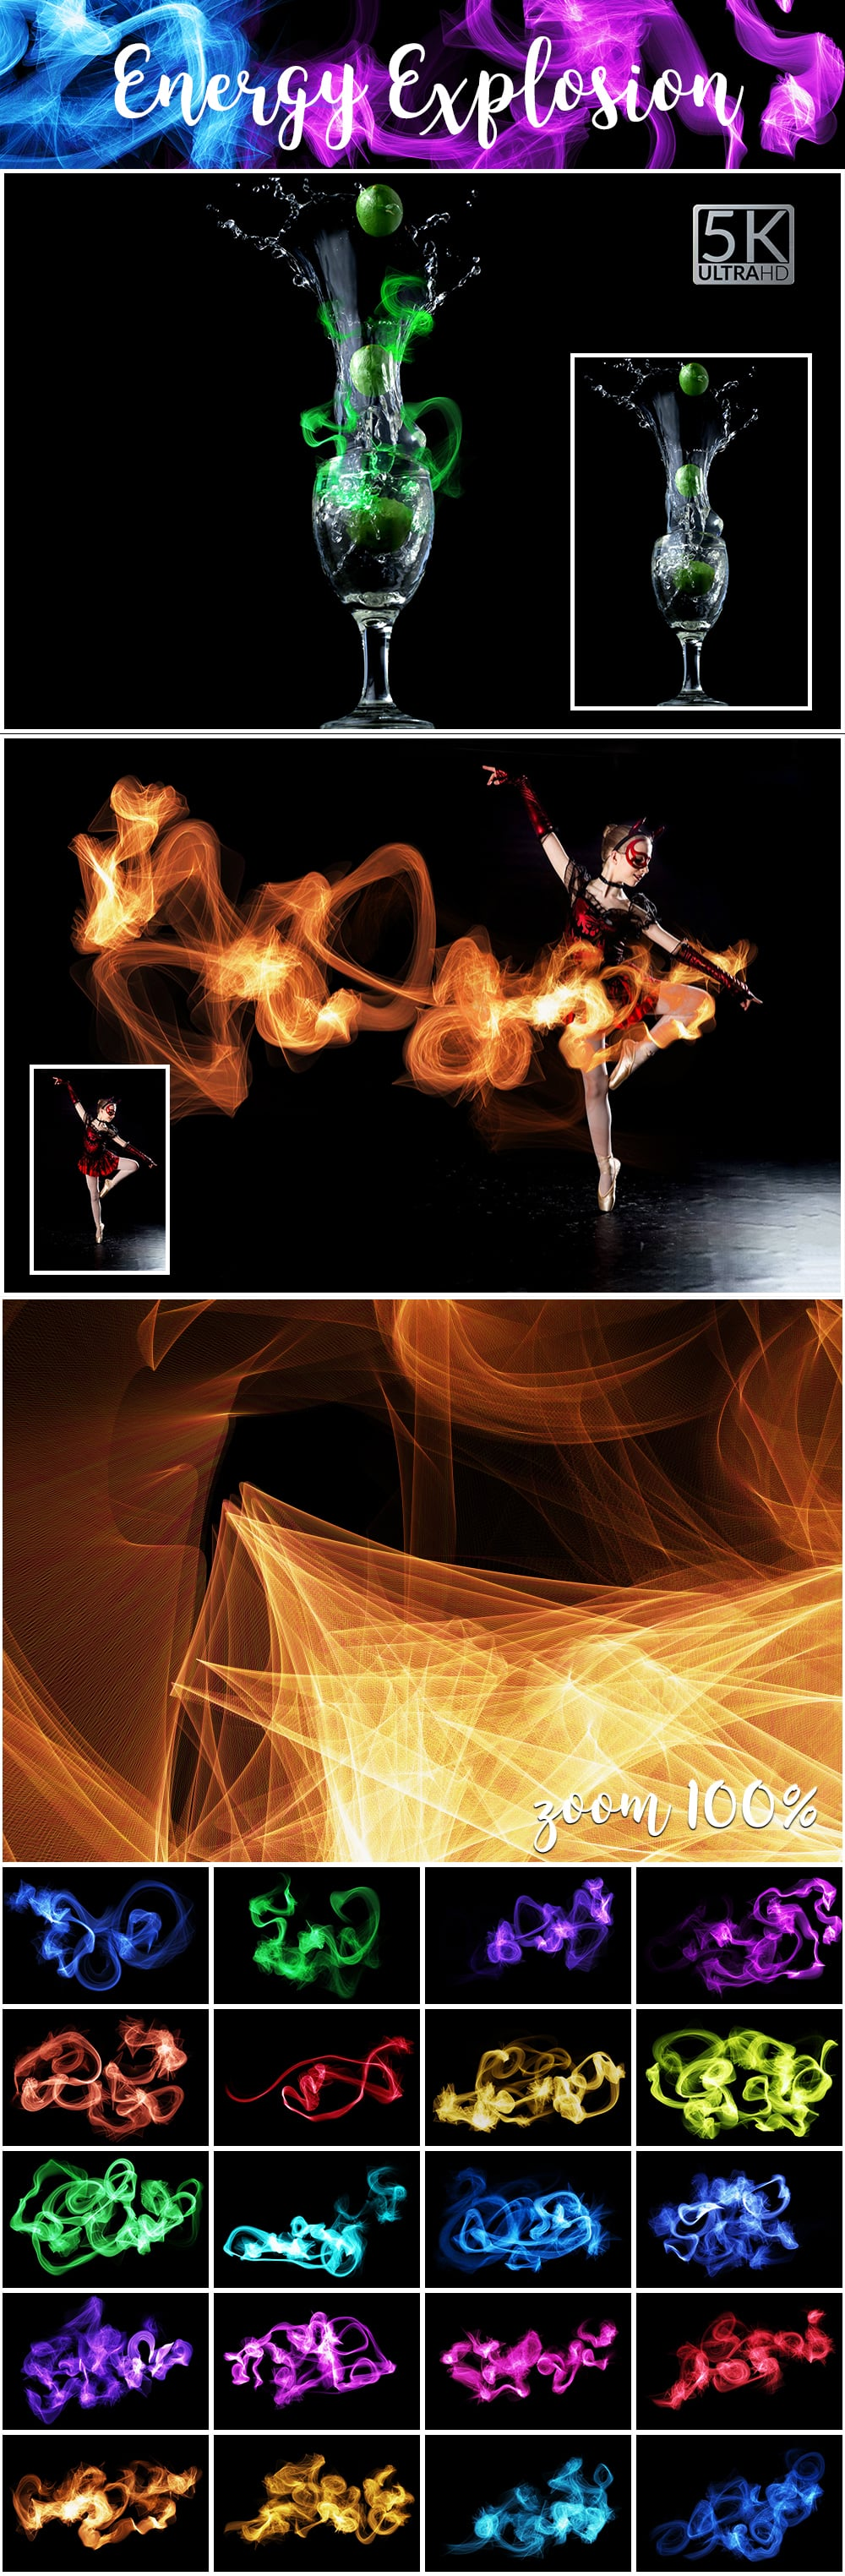 1100 Photoshop Overlays Mega Pack - Extended License - 7 Energy Explosion